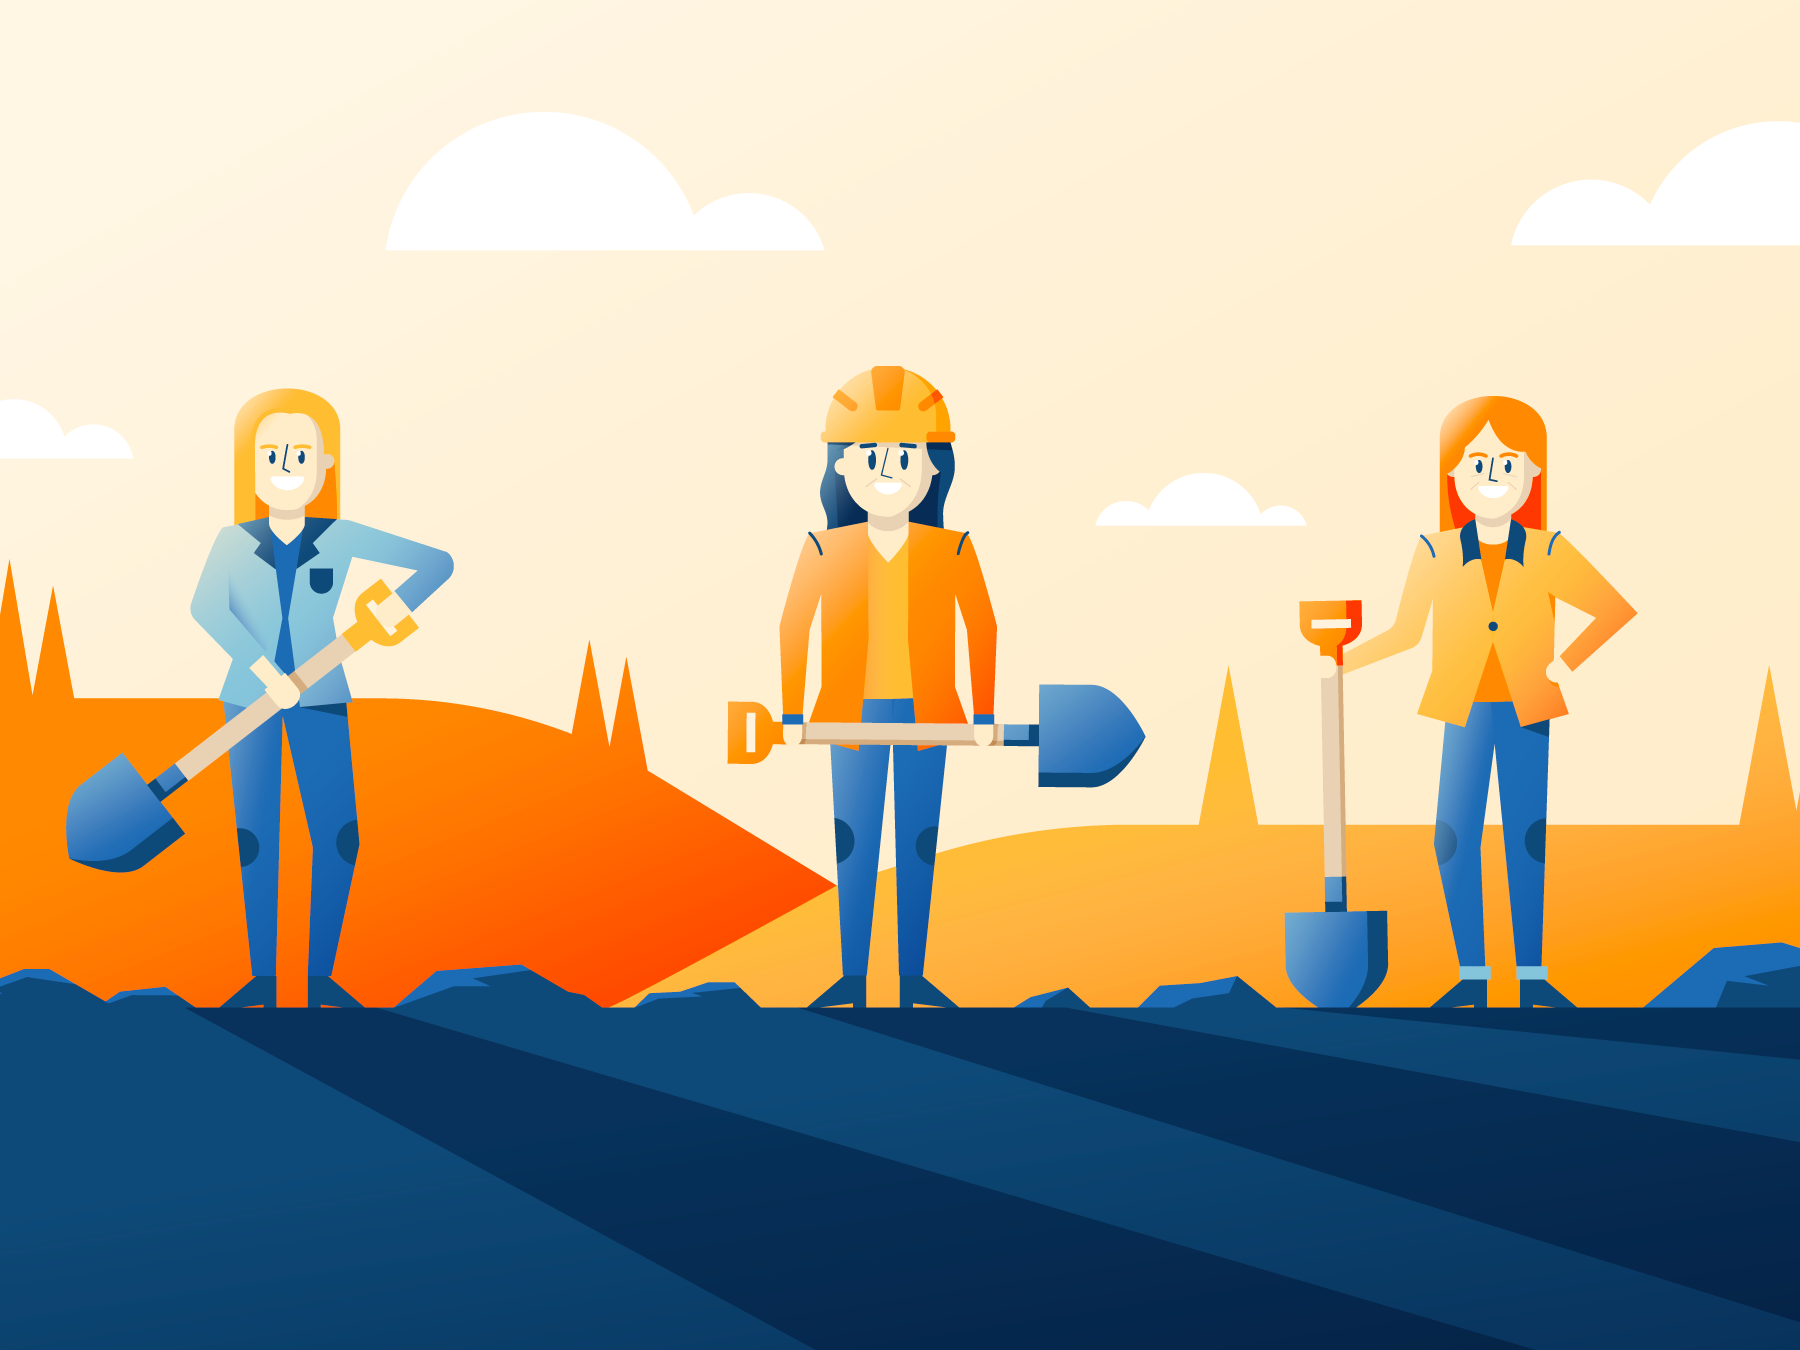 Women in Construction: The State of the Industry in 2020